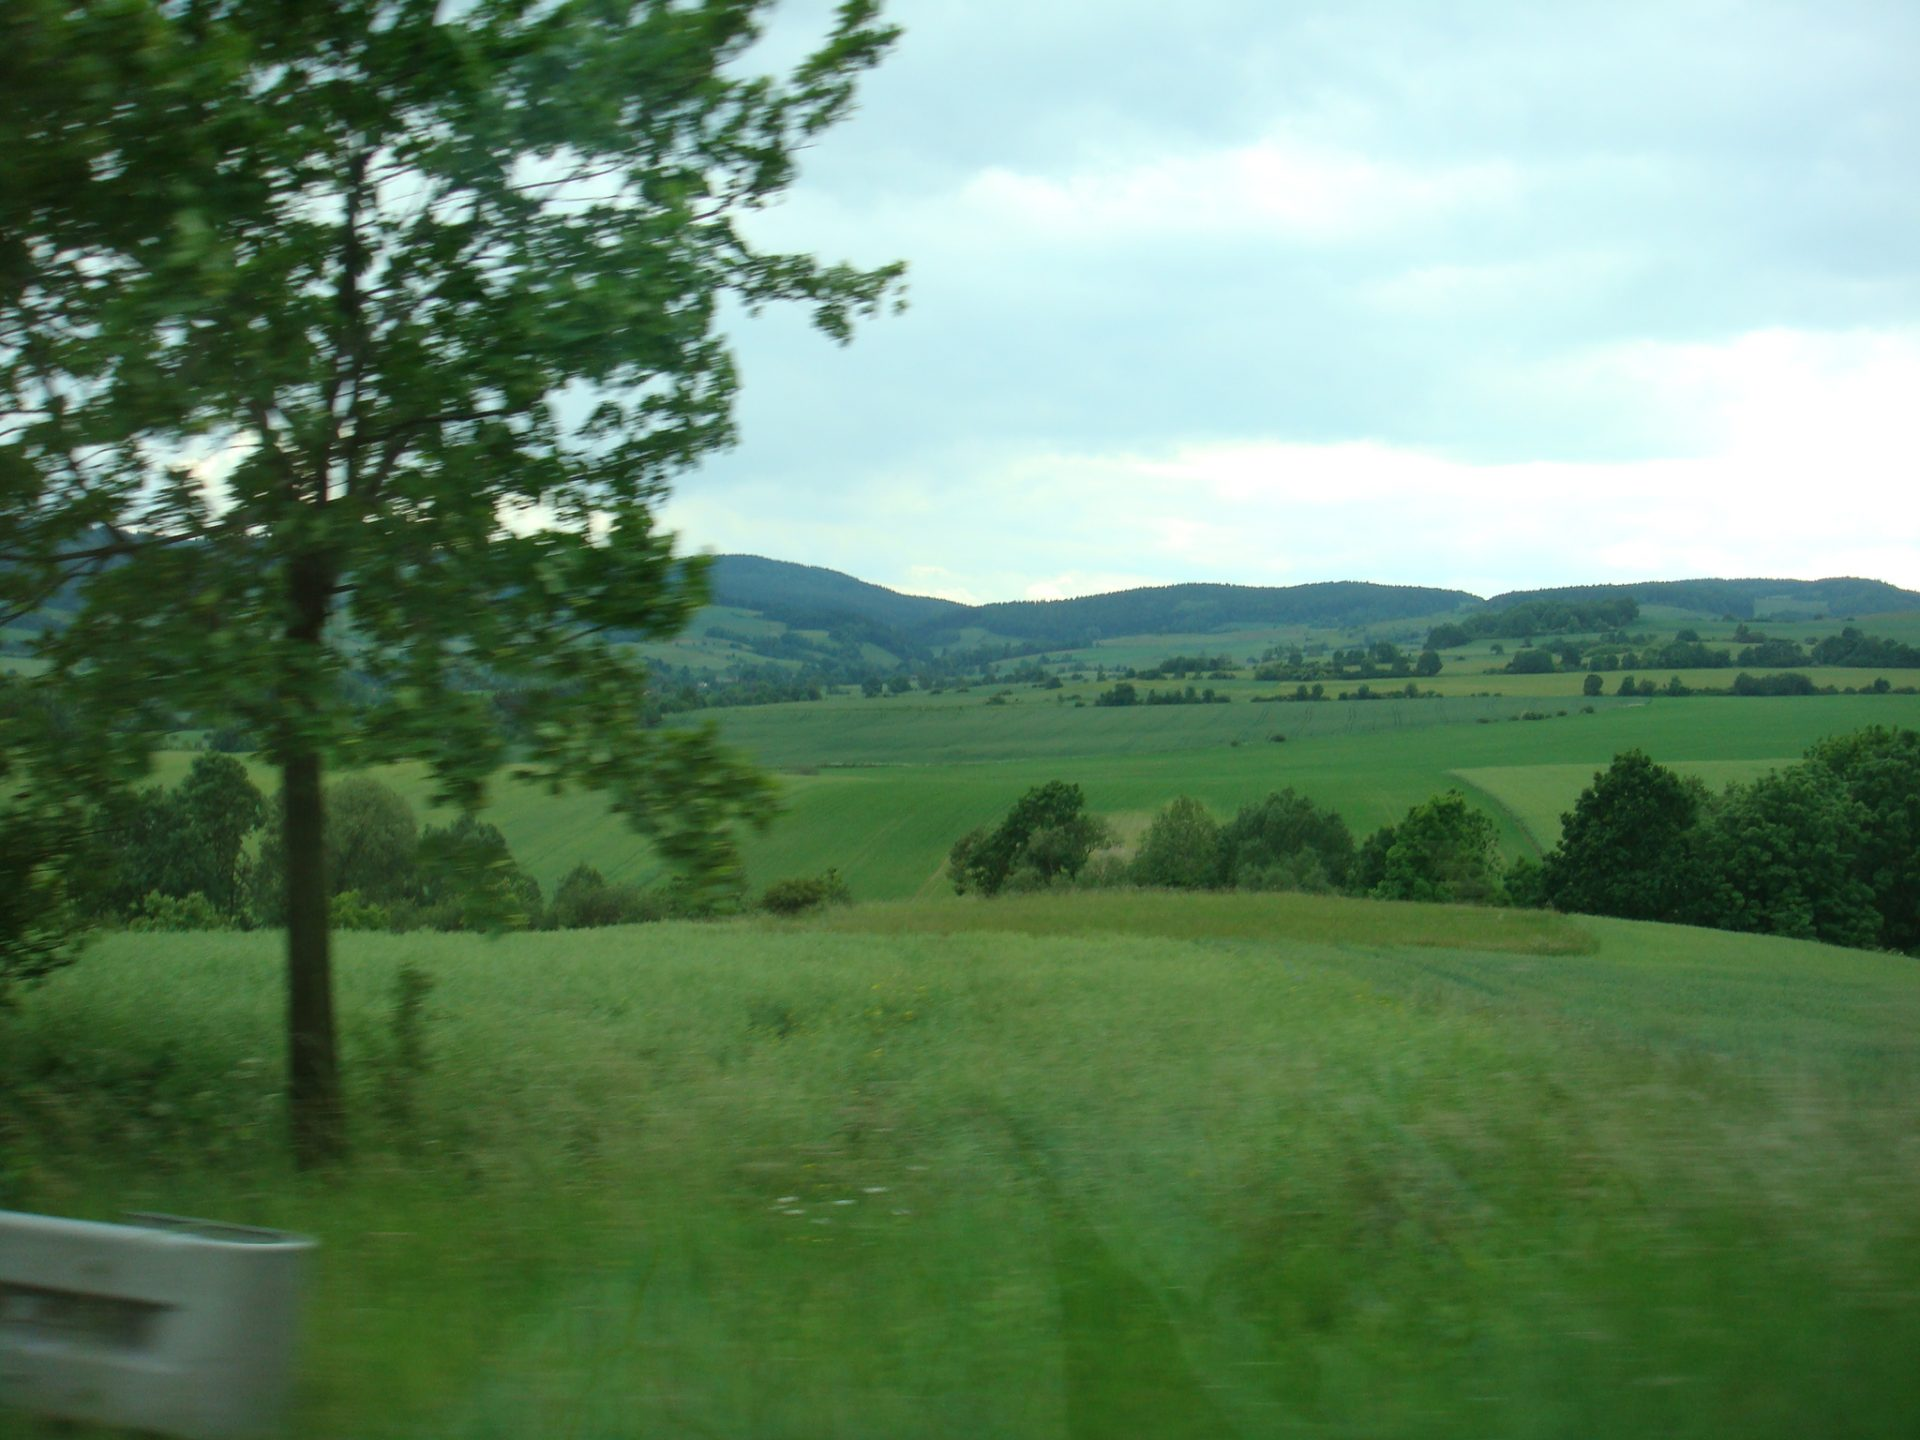 The countryside in Poland near Katowice